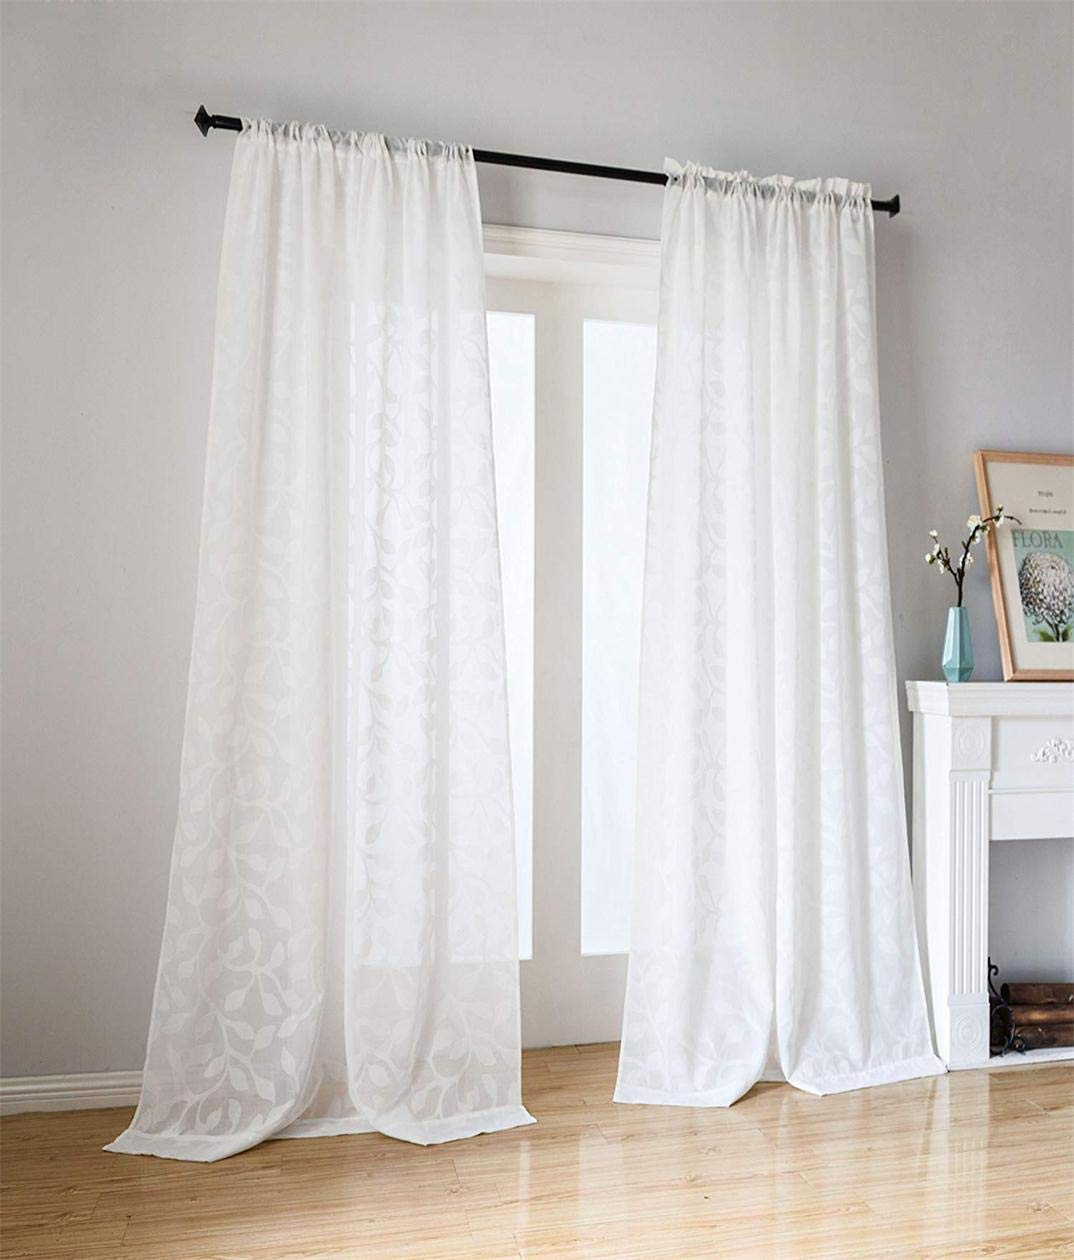 Taisier Home Cut Flower Design White Sheer Curtains,84 Long For Bedroom Curtains 2 Panel,Rod Pocket Semi Sheer Used For Sliding Glass Doorm,Elegant Sheers For Living Room(String Rod,52''×84'')